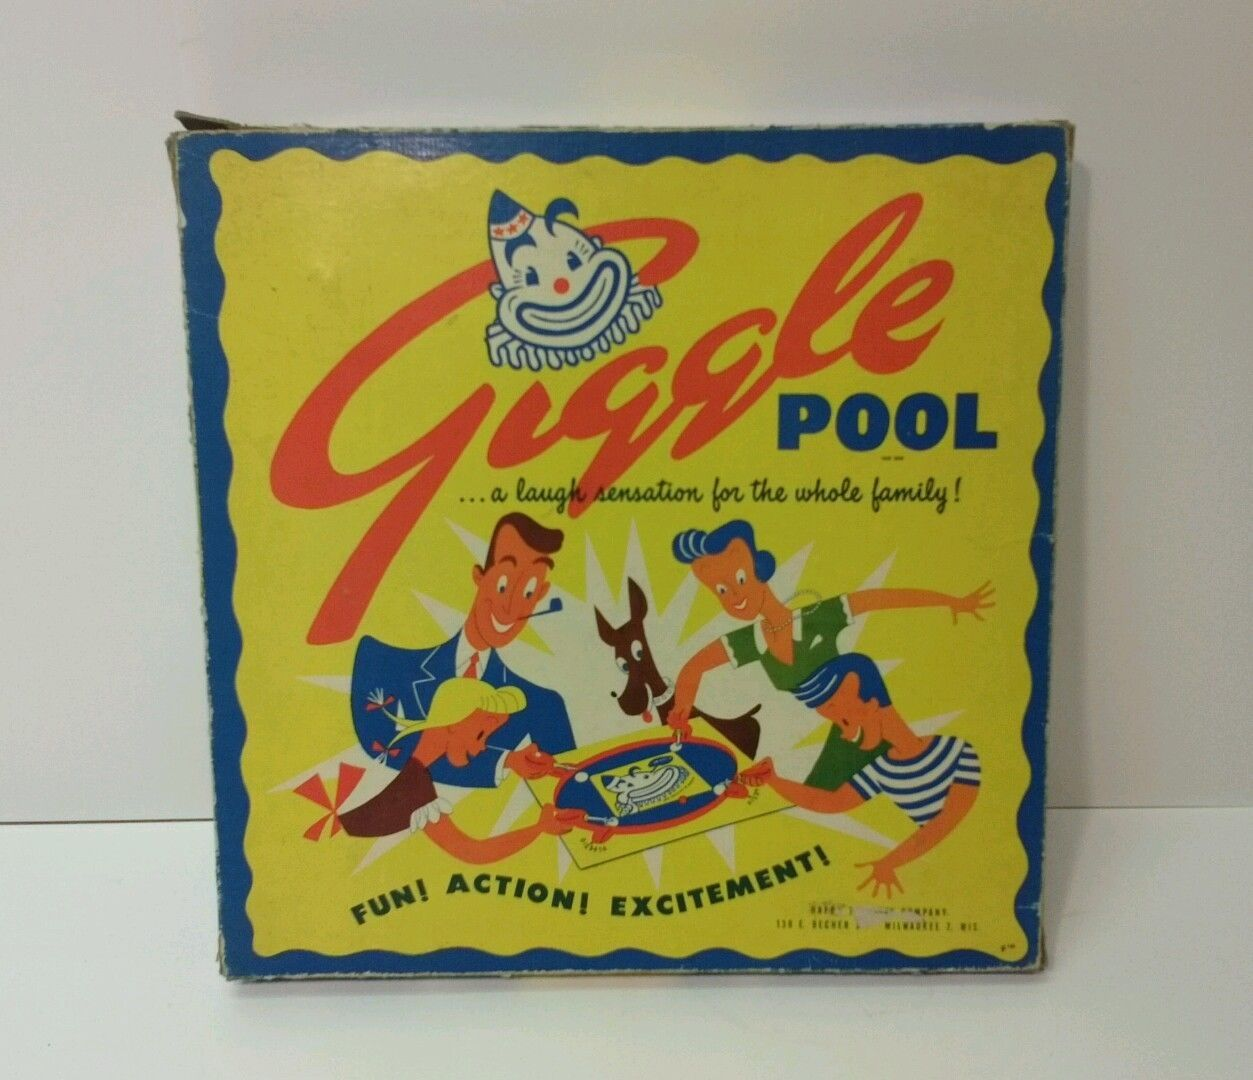 Giggle pool board game happy endlaco company 1943 vintage complete ebay